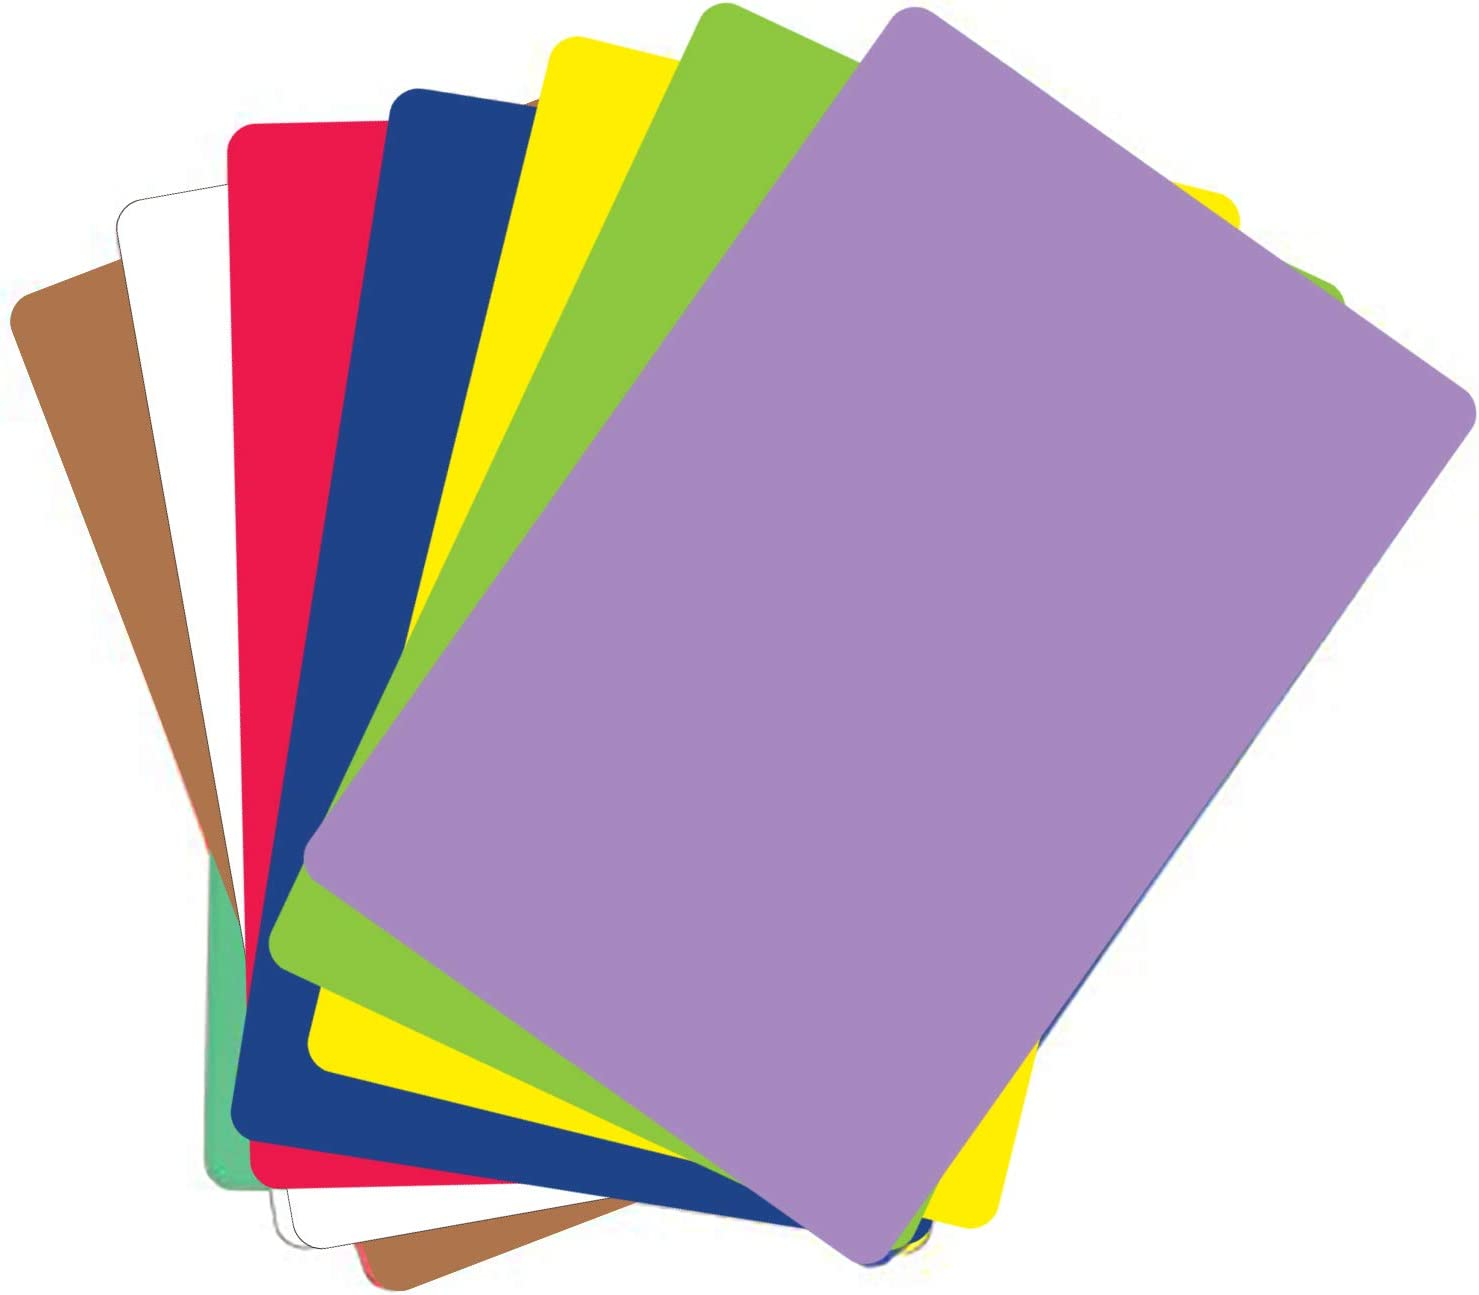 """Food Service Grade Heavy Gauge Flexible Cutting Board Mats Set of 7 Assorted Colors BPA Free 12"""" x 18"""" Made in the USA by Chop Chop"""